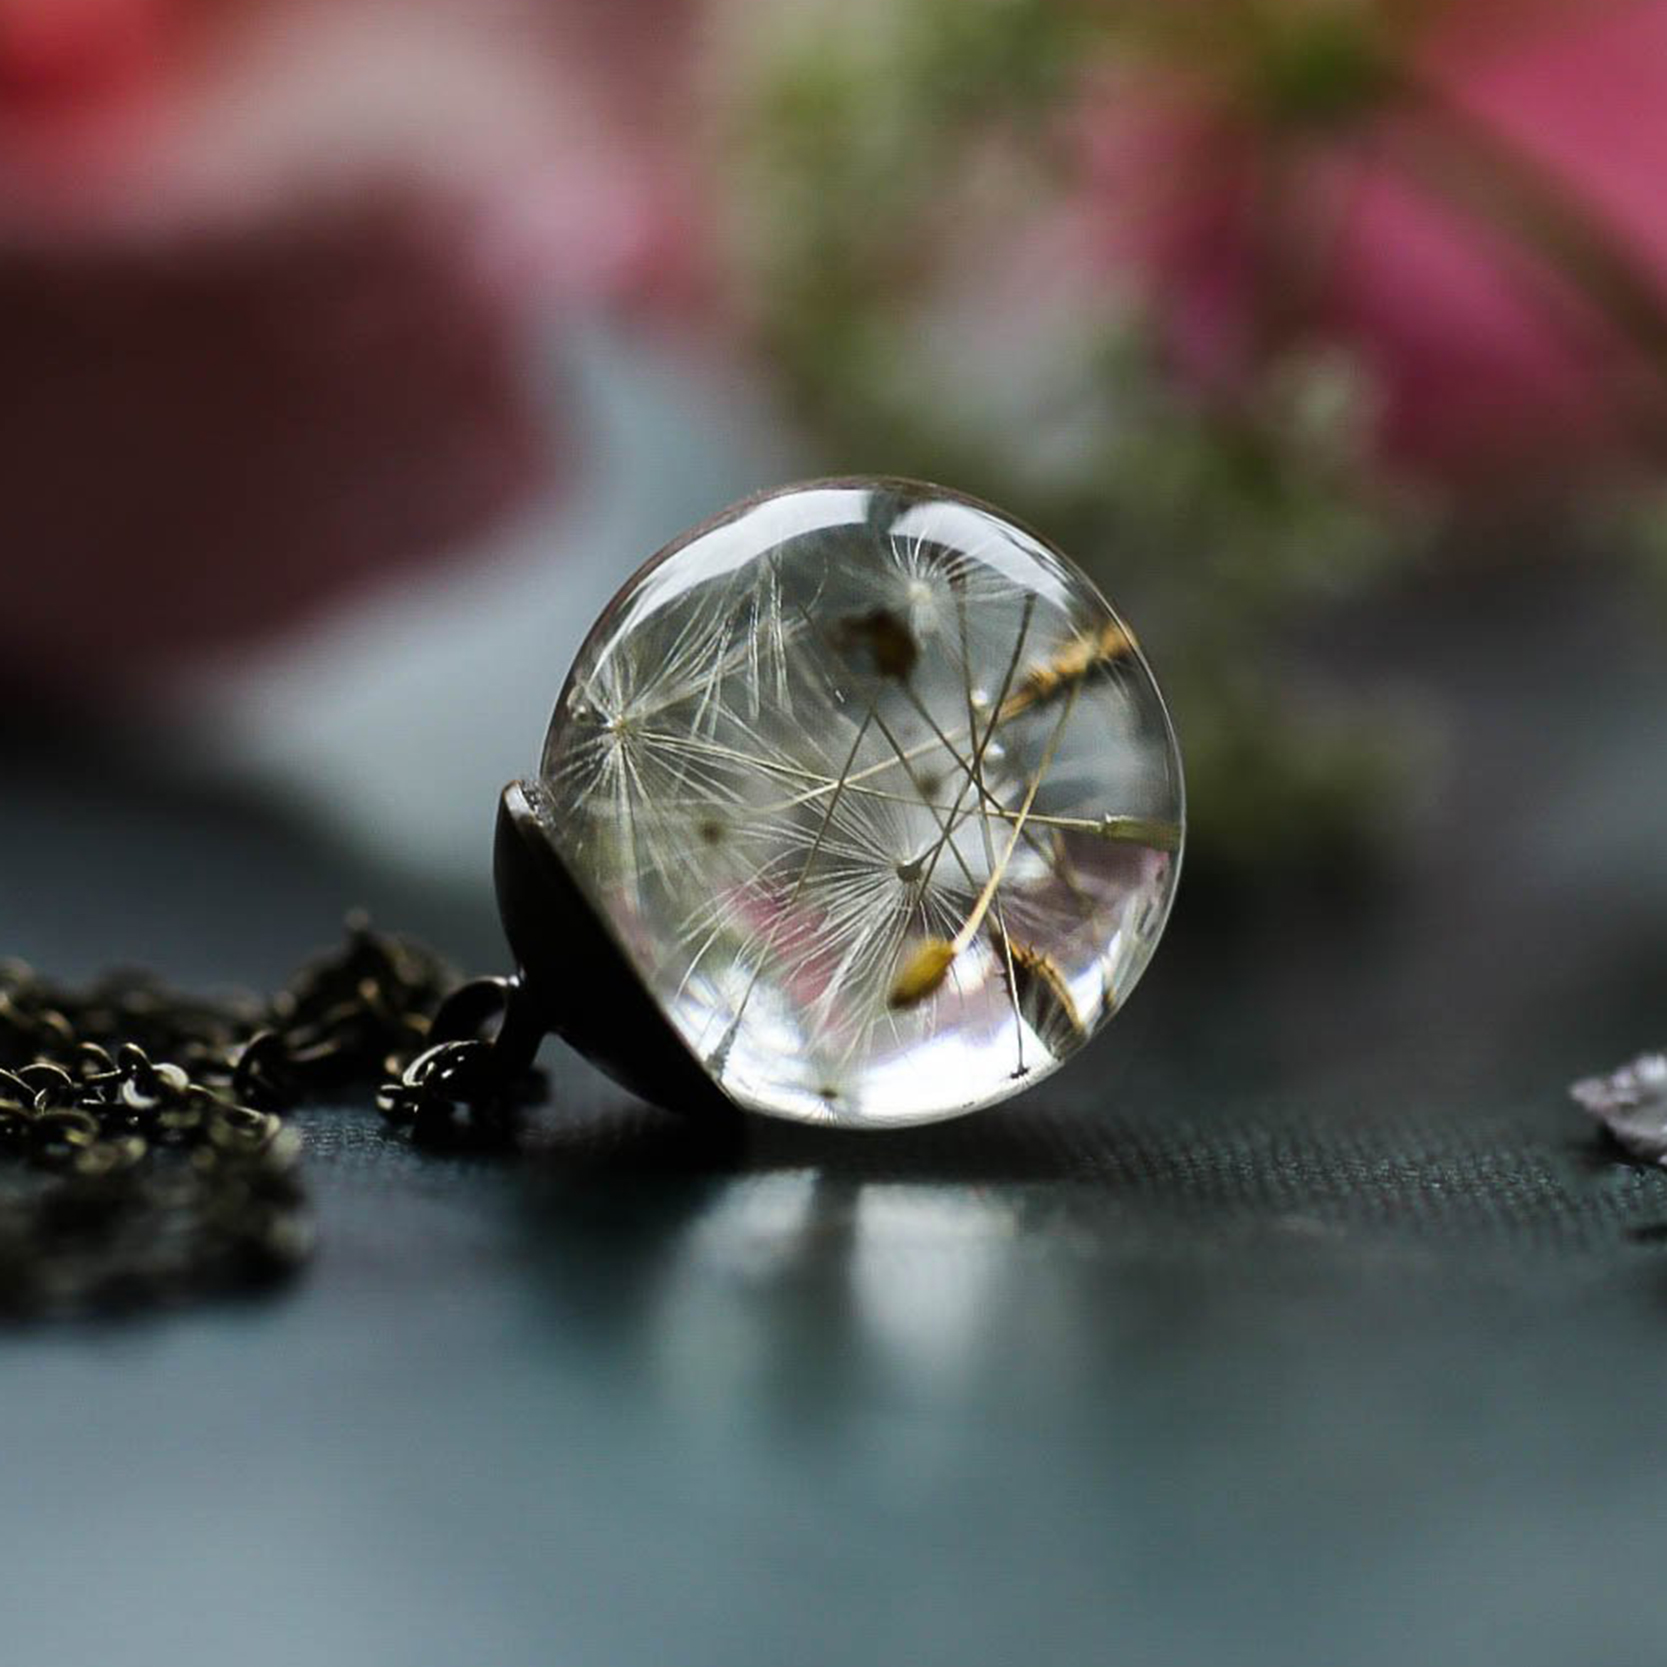 Dandelion Wishing Necklace Real Dandelion Seeds In Clear Crystal Ball Pendant Necklace Handmade Gift for Her